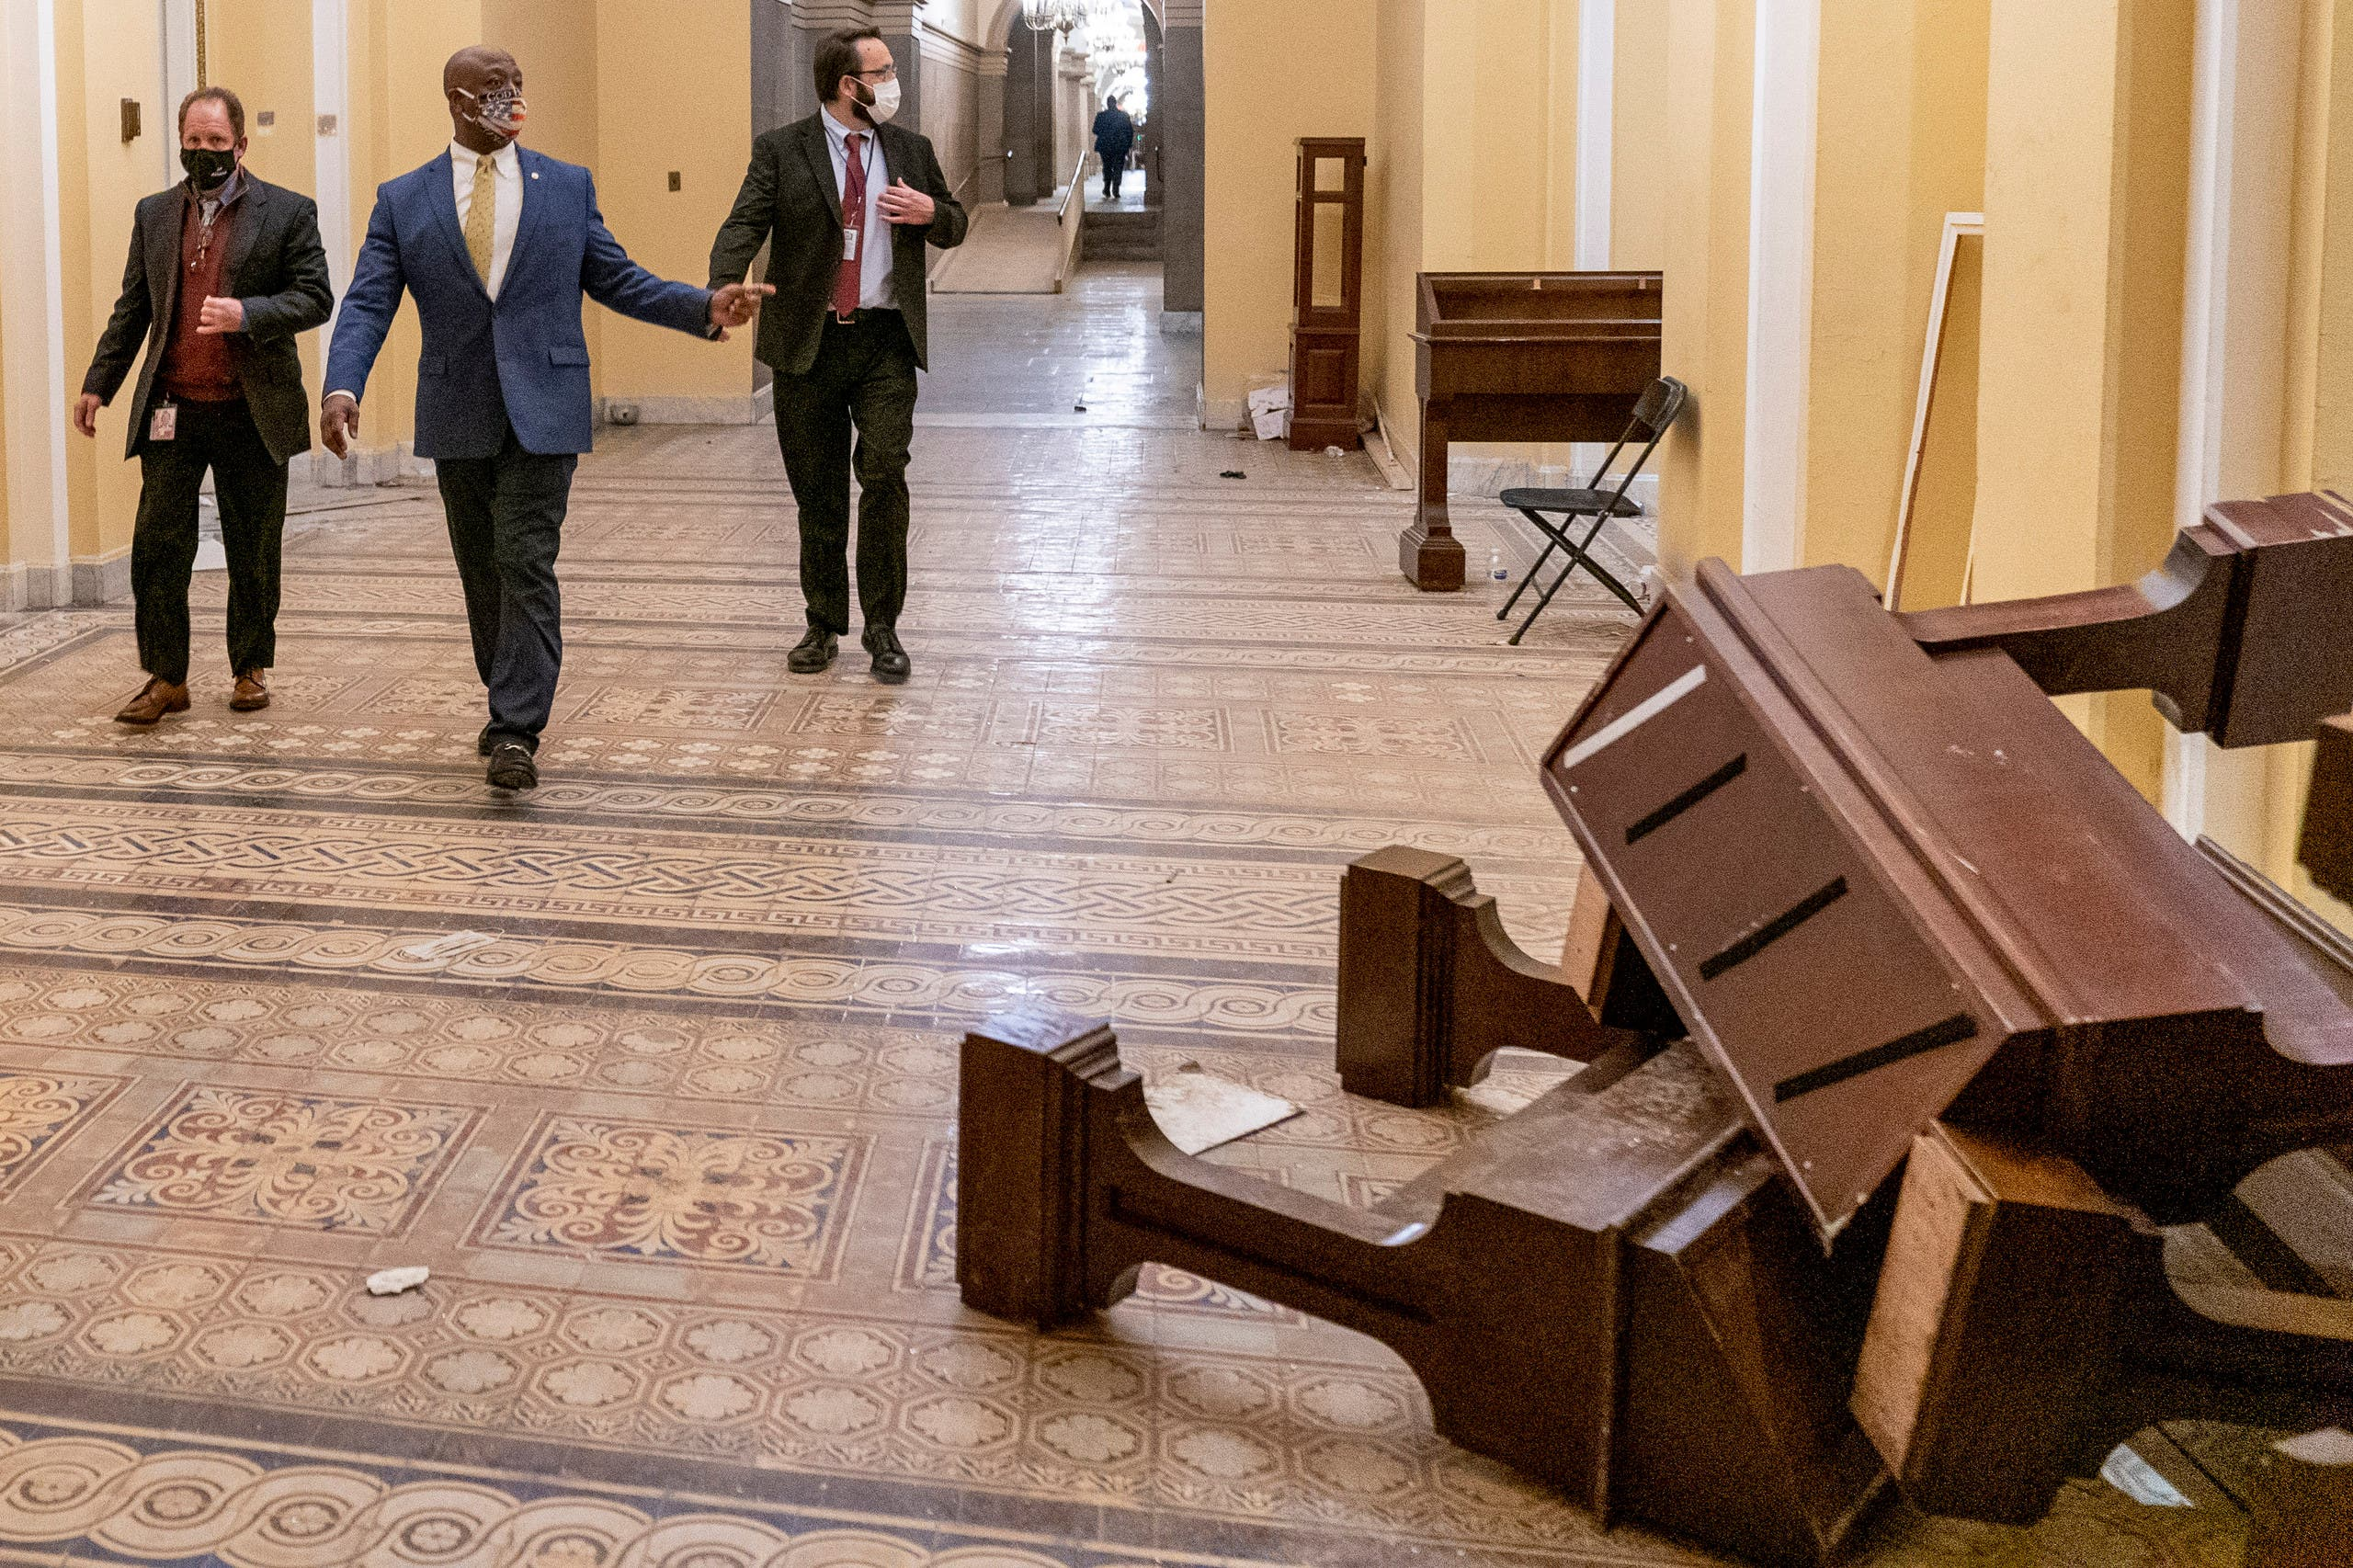 Sen. Tim Scott, R-S.C., second from left, walks past damage in the early morning hours of Thursday, Jan. 7, 2021, after protesters stormed the Capitol in Washington, on Wednesday. (AP Photo/Andrew Harnik)